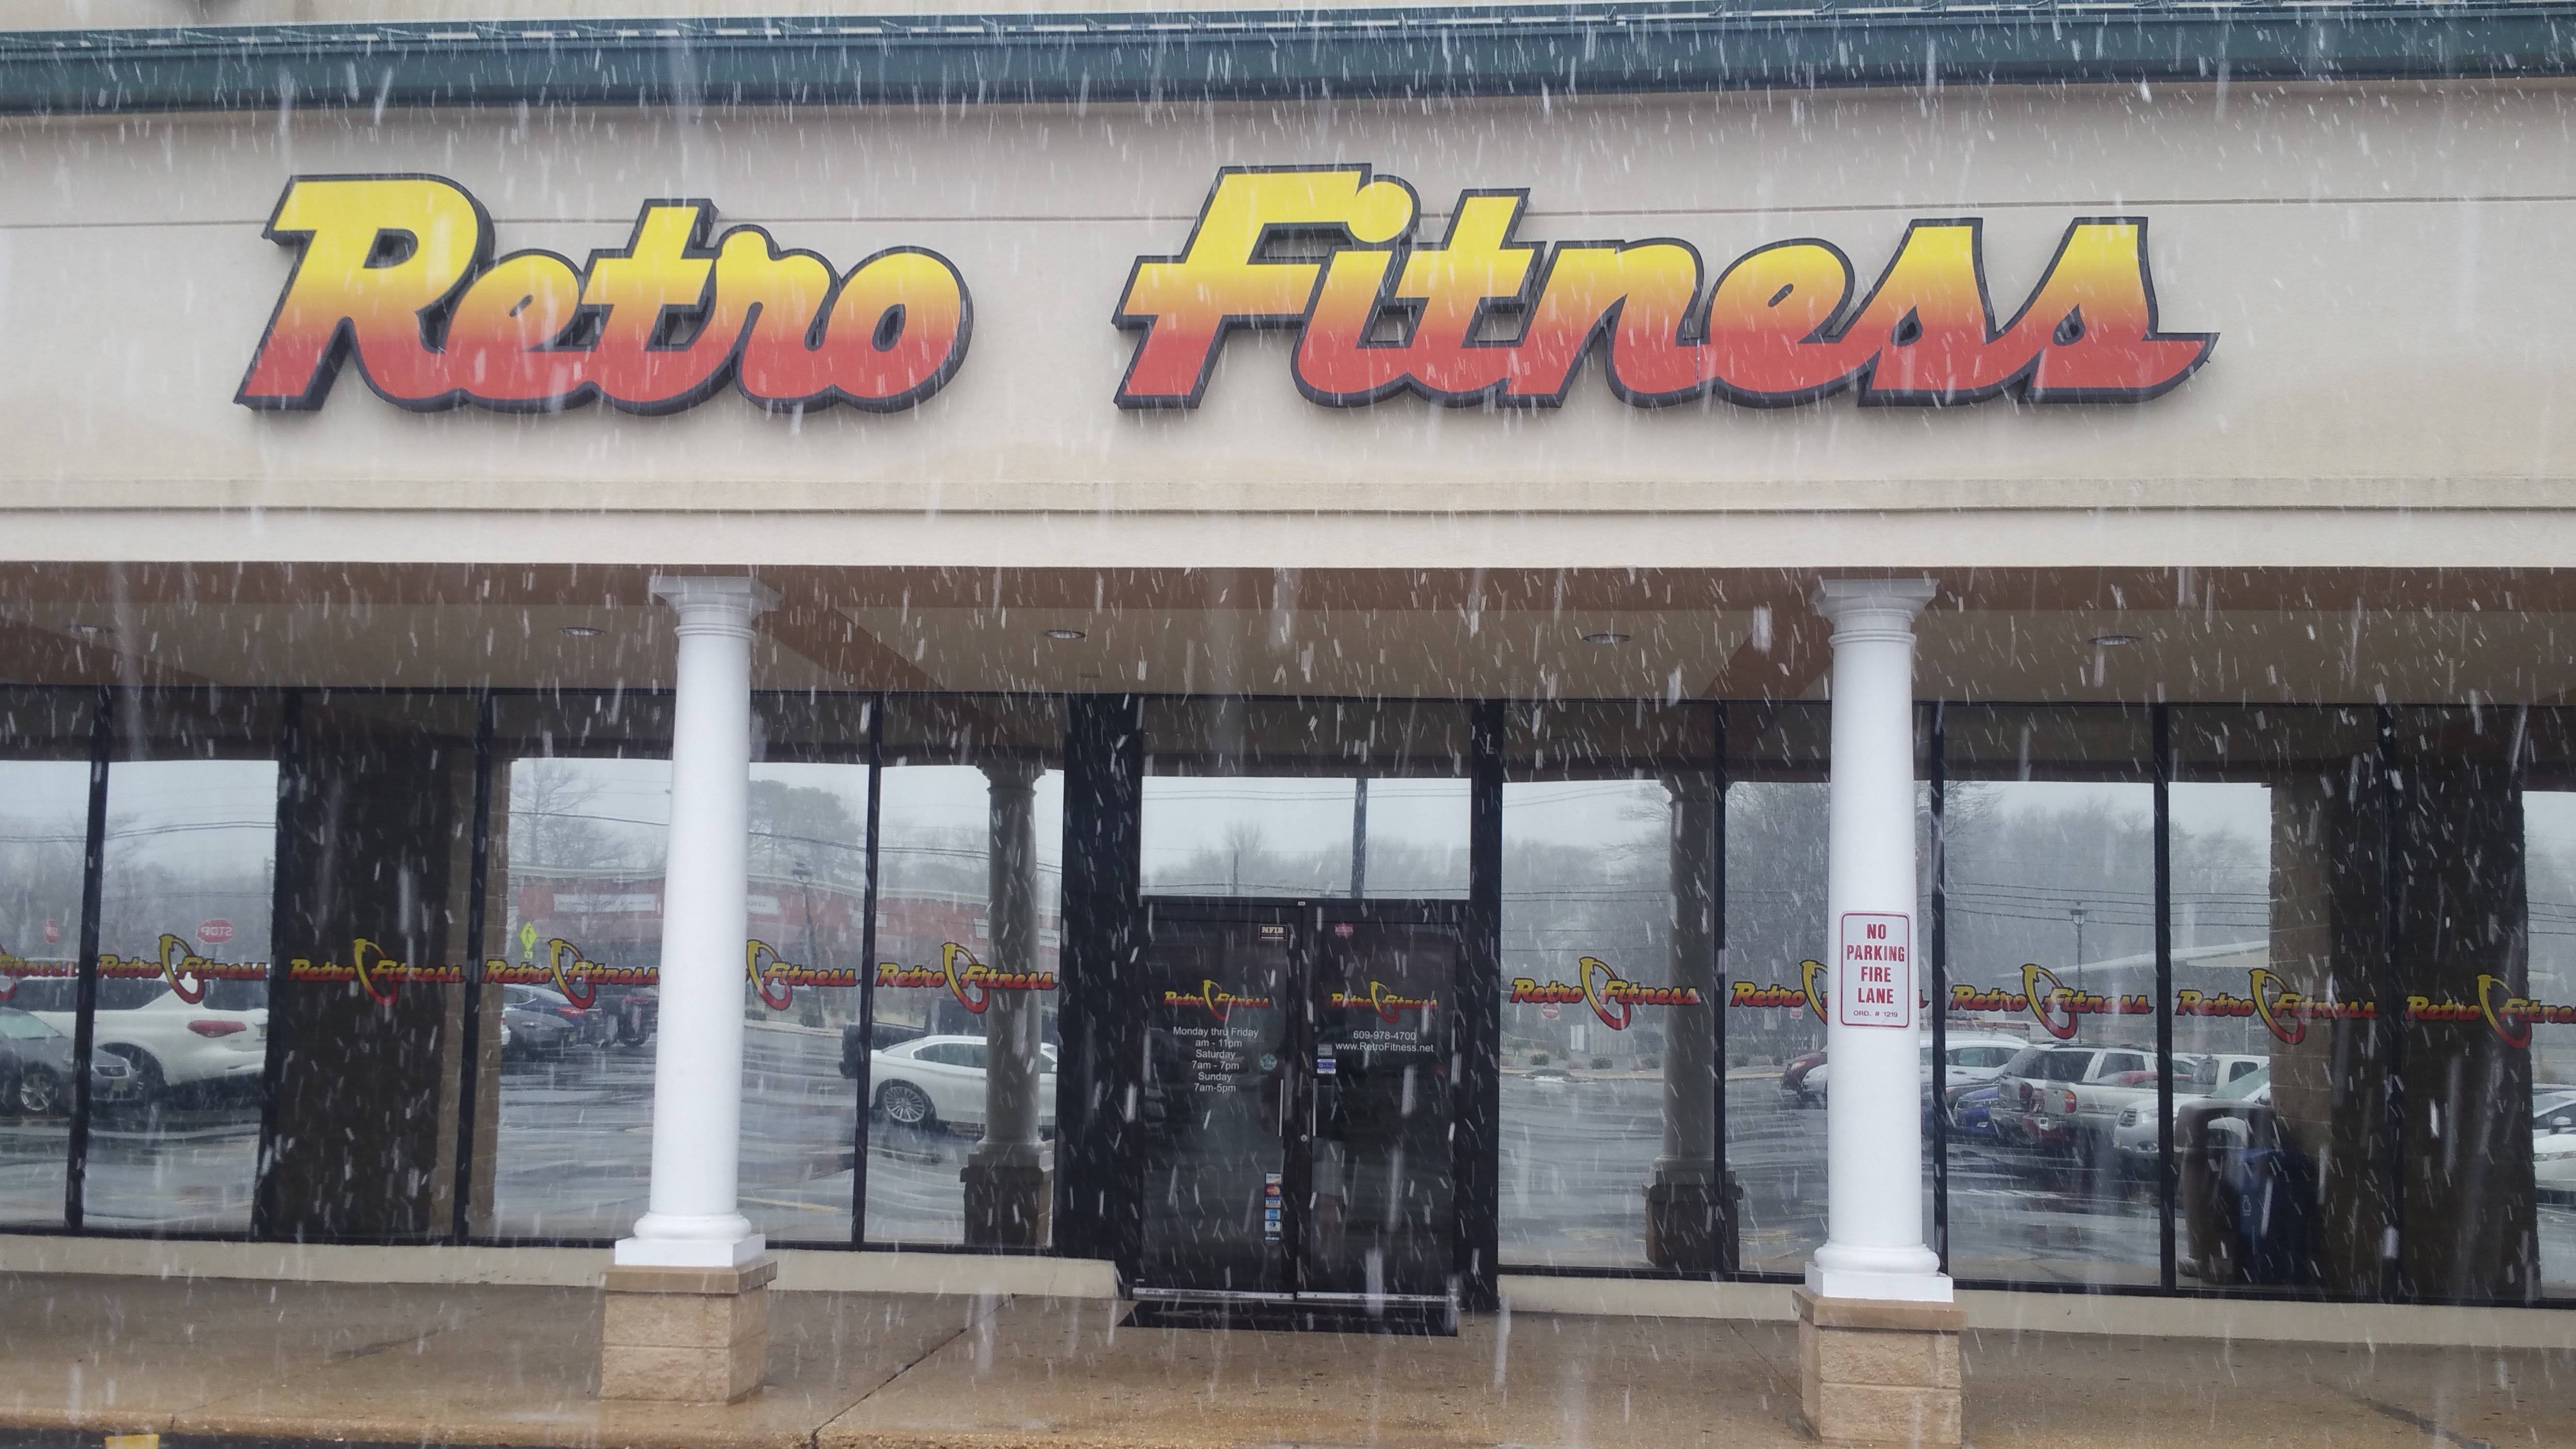 a3a7ef3bb9afb09abf99_retro_fitness.jpg